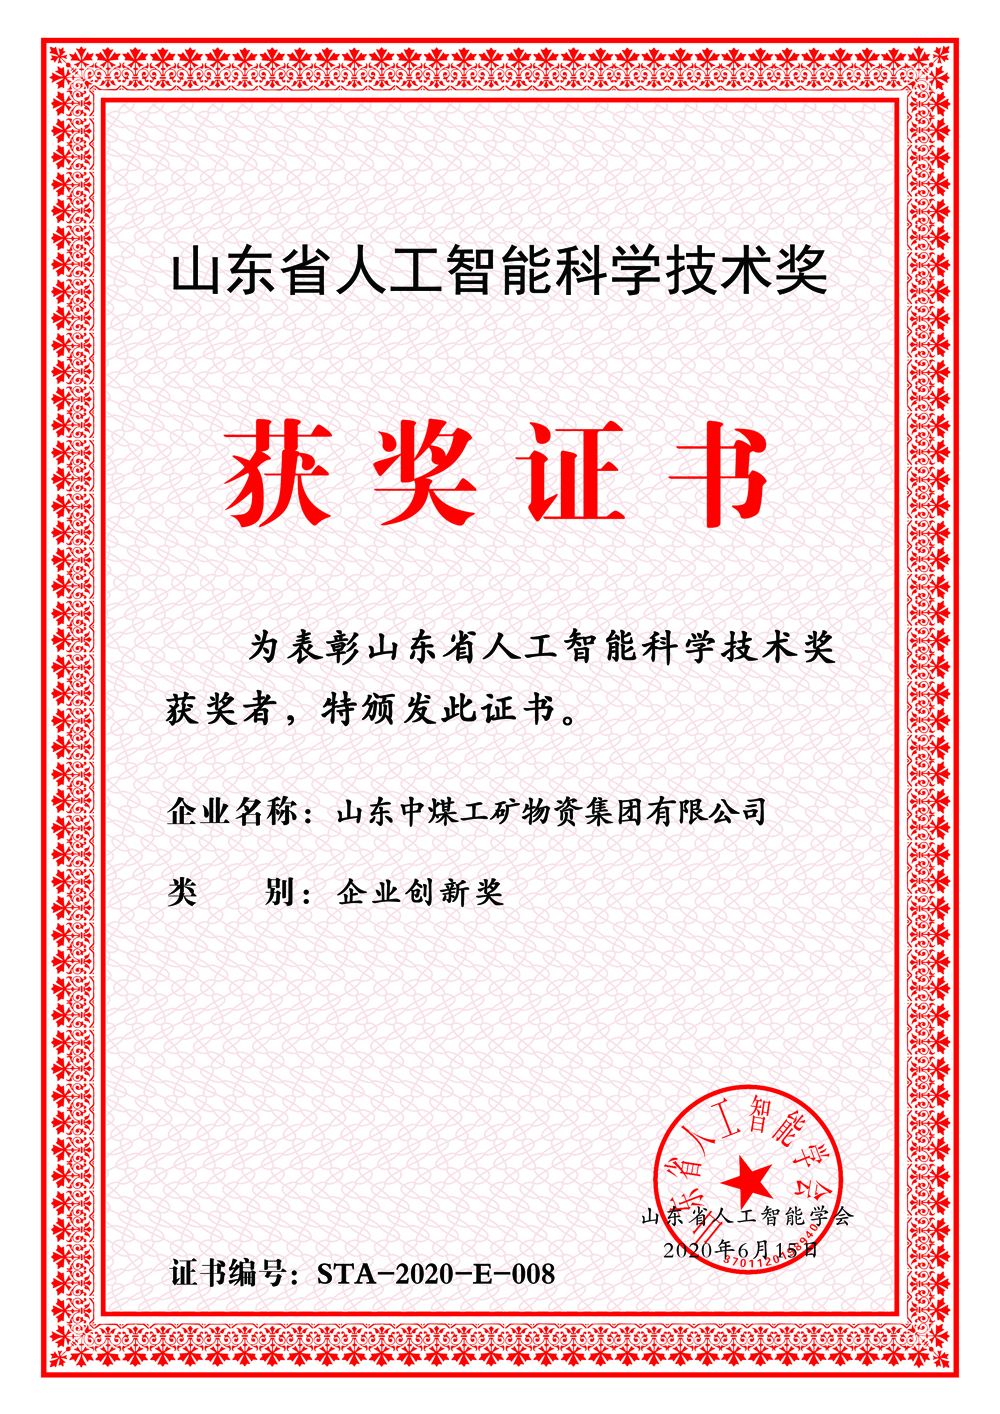 Warm Congratulations To China Coal Group For Winning The Shandong Artificial Intelligence Science And Technology Award